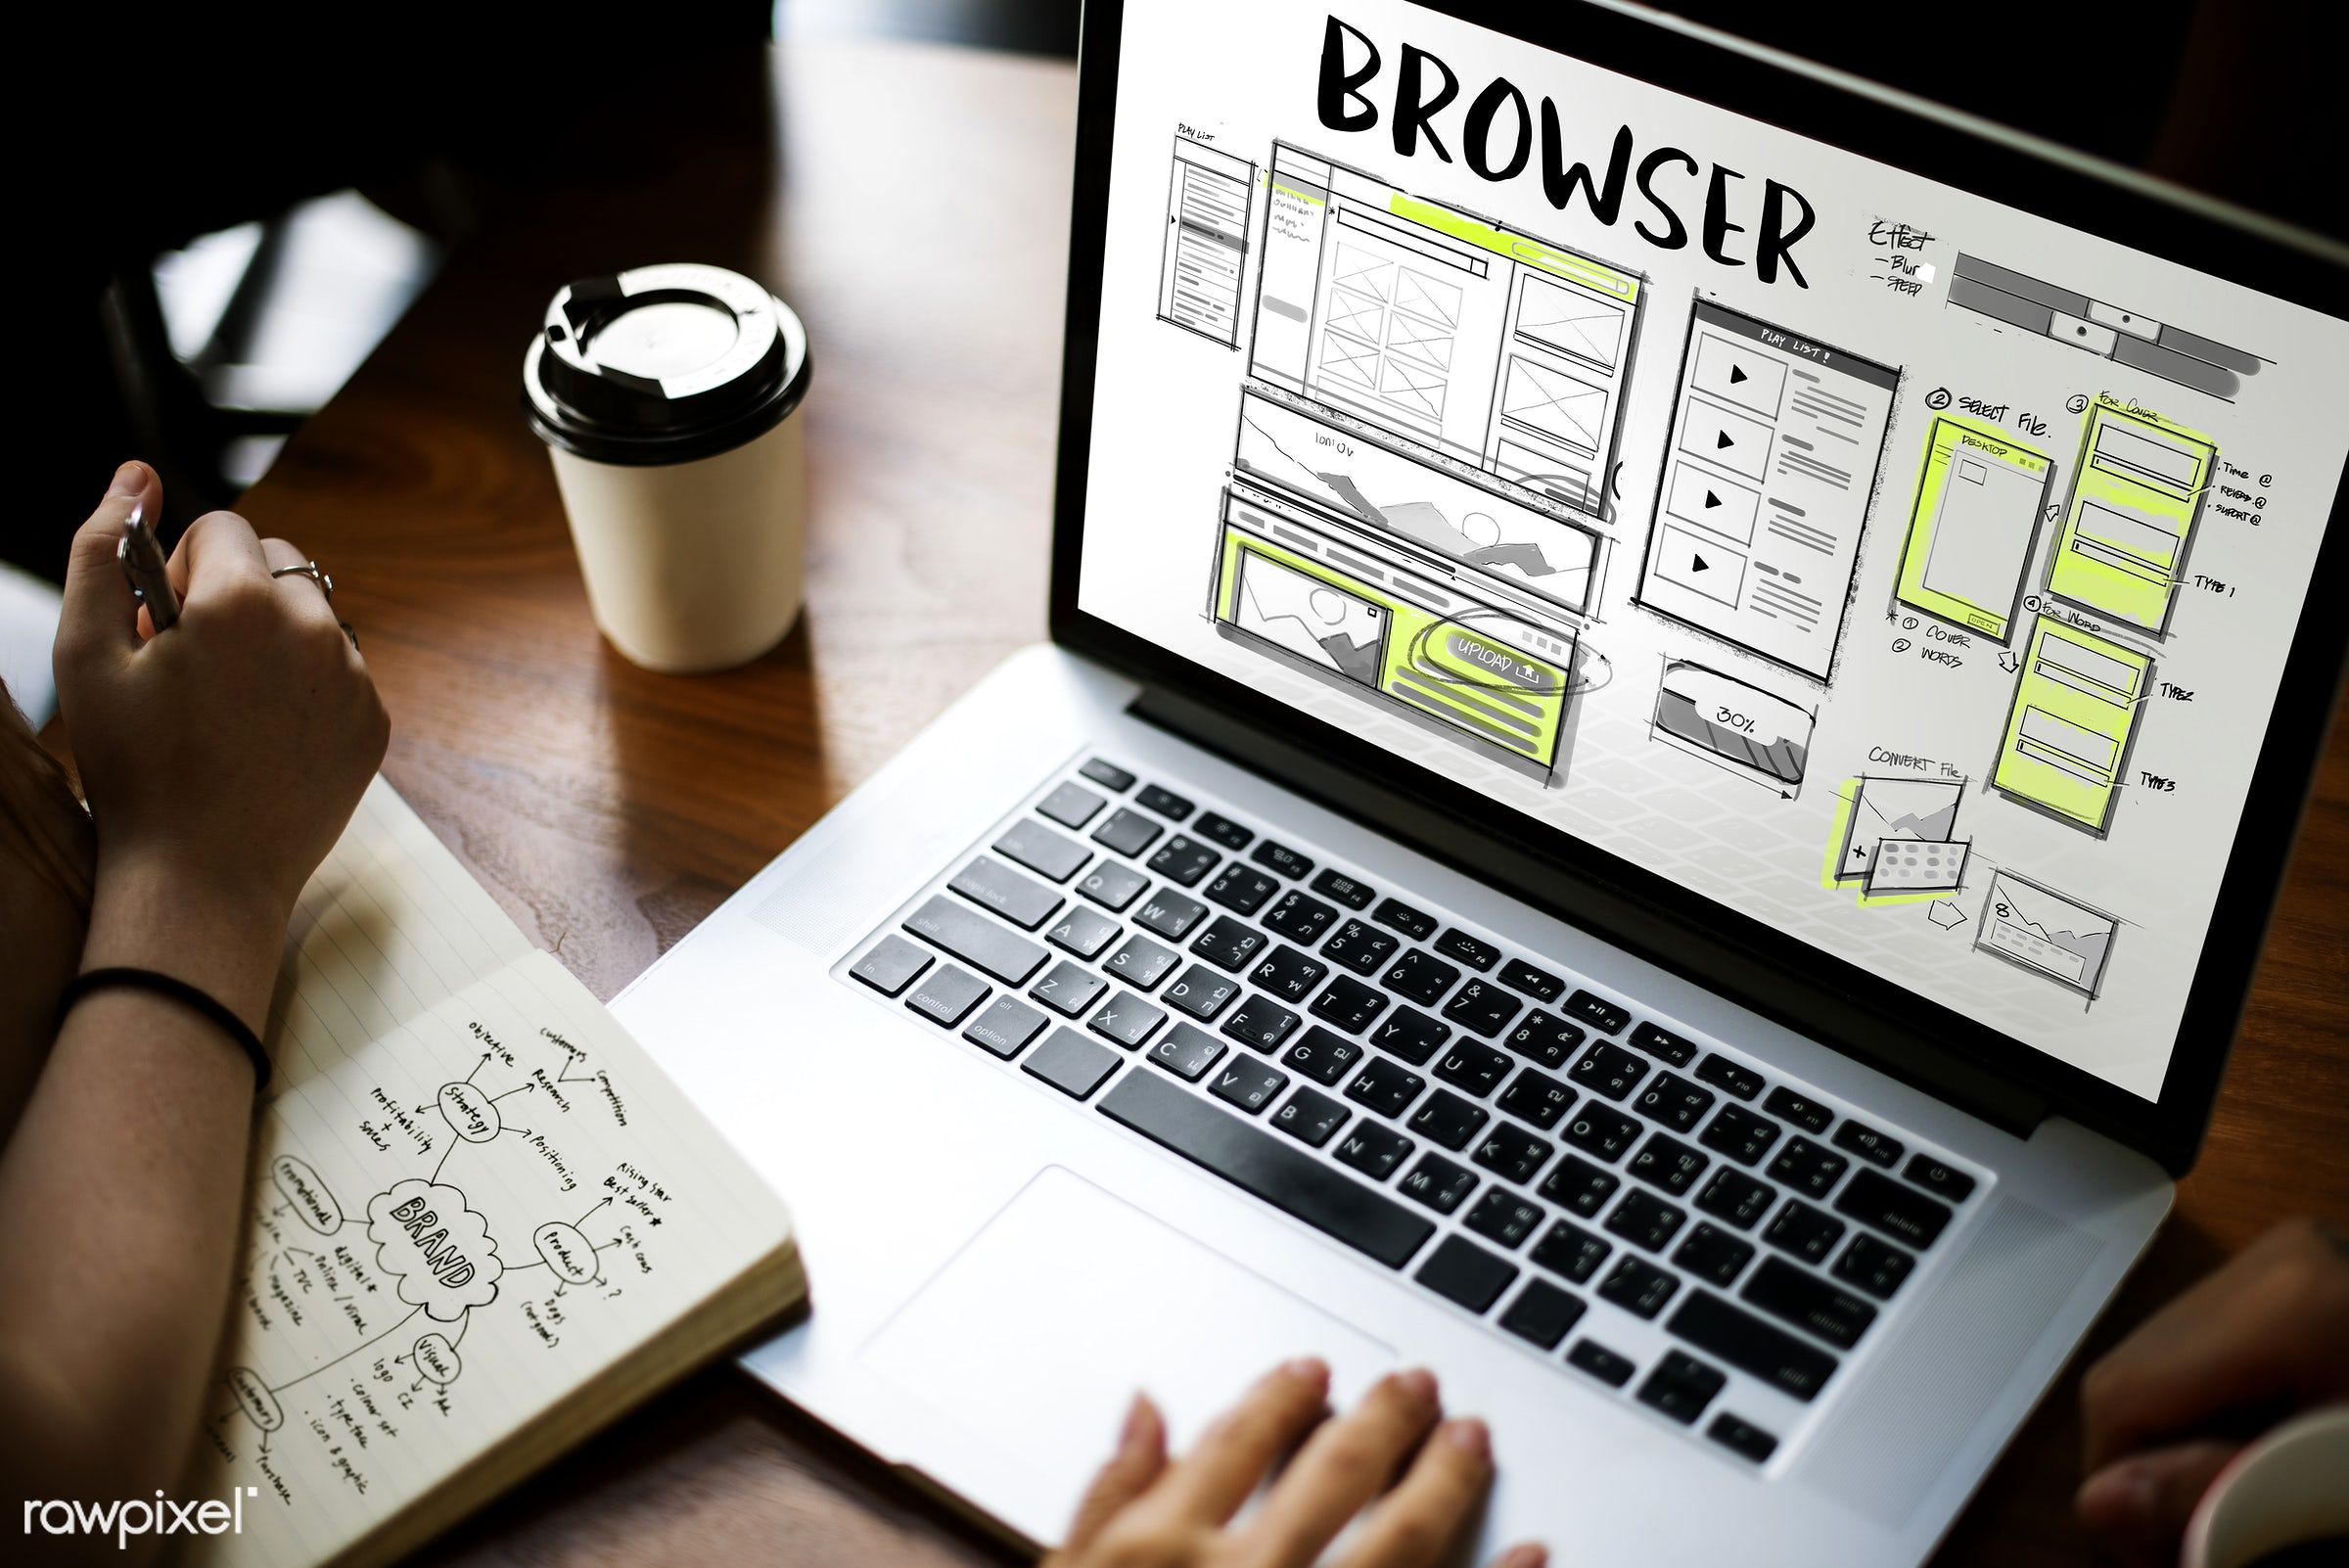 Online browser - coding, layout, work, website, design, sketch, pen, browser, browsing, coffee cup, content, develop, device...